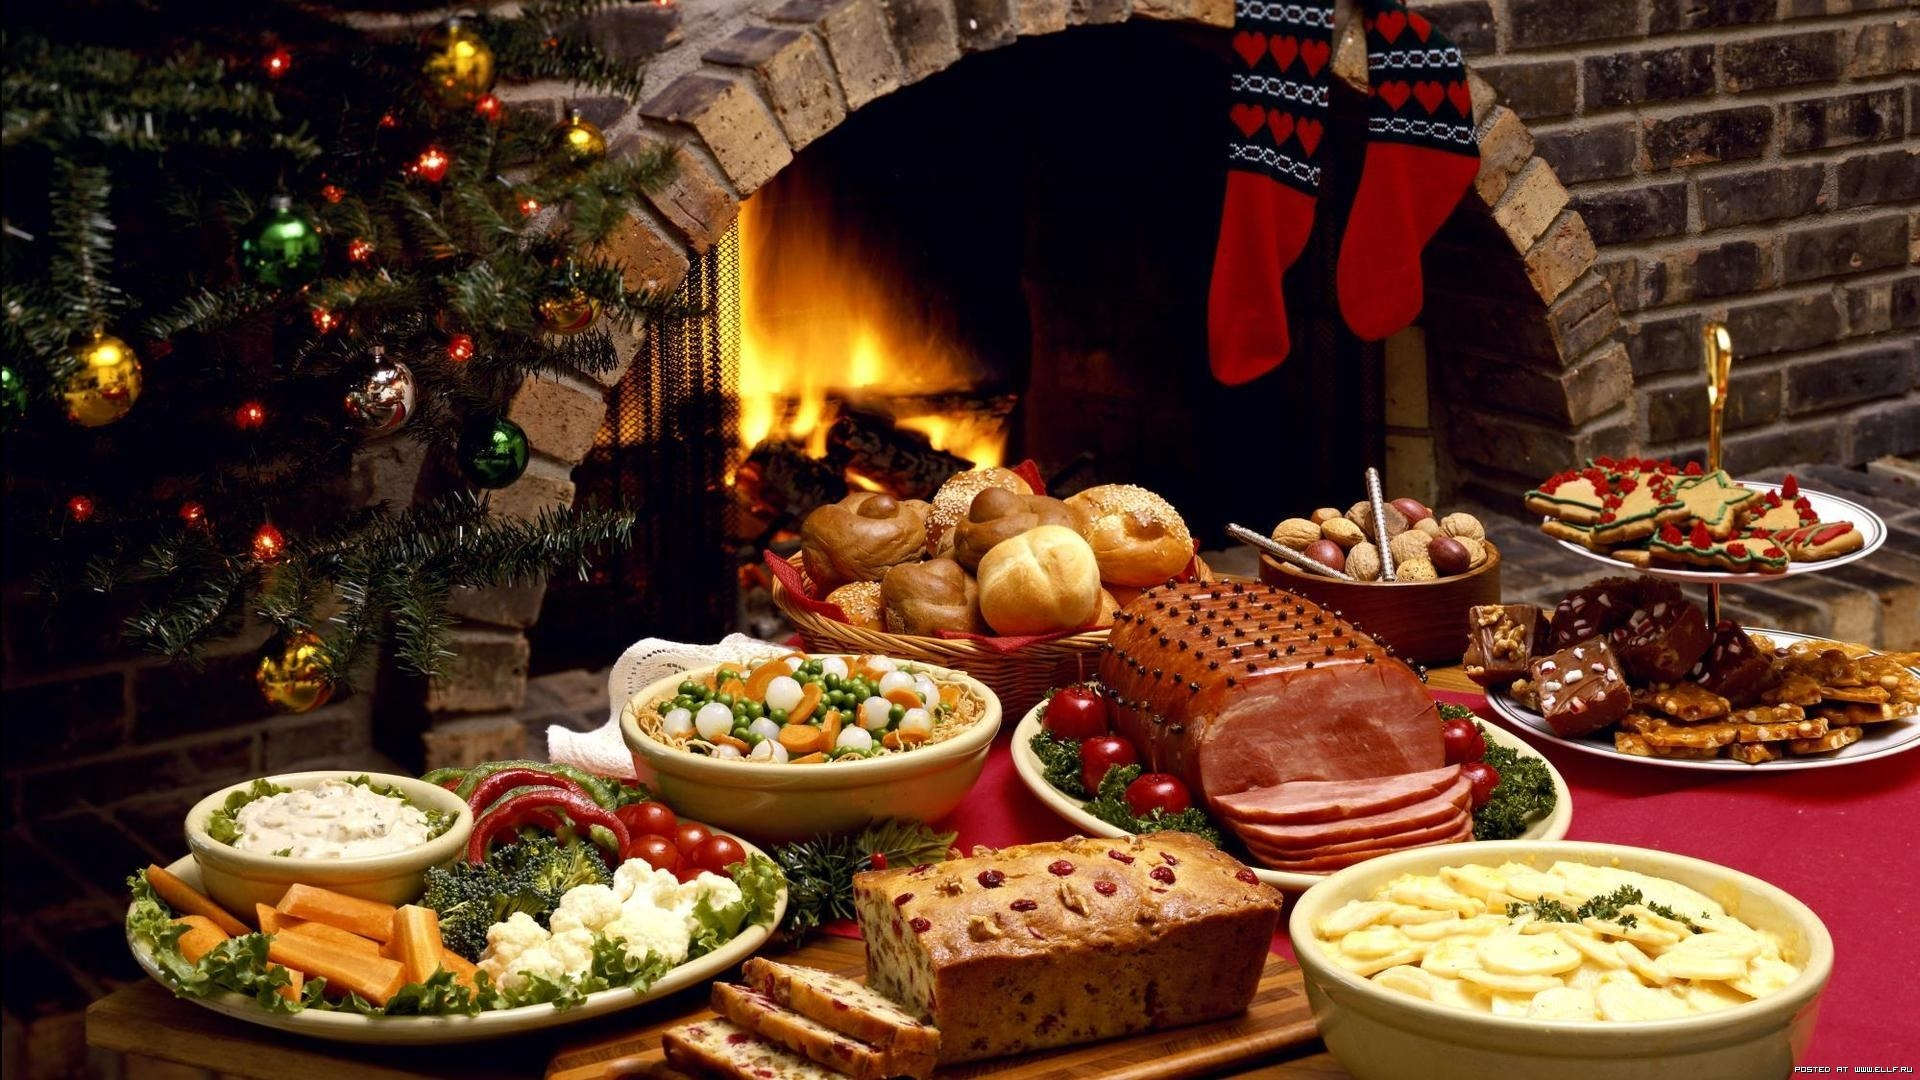 Christmas Christmas Ornaments Cookie Fireplace 1920x1080